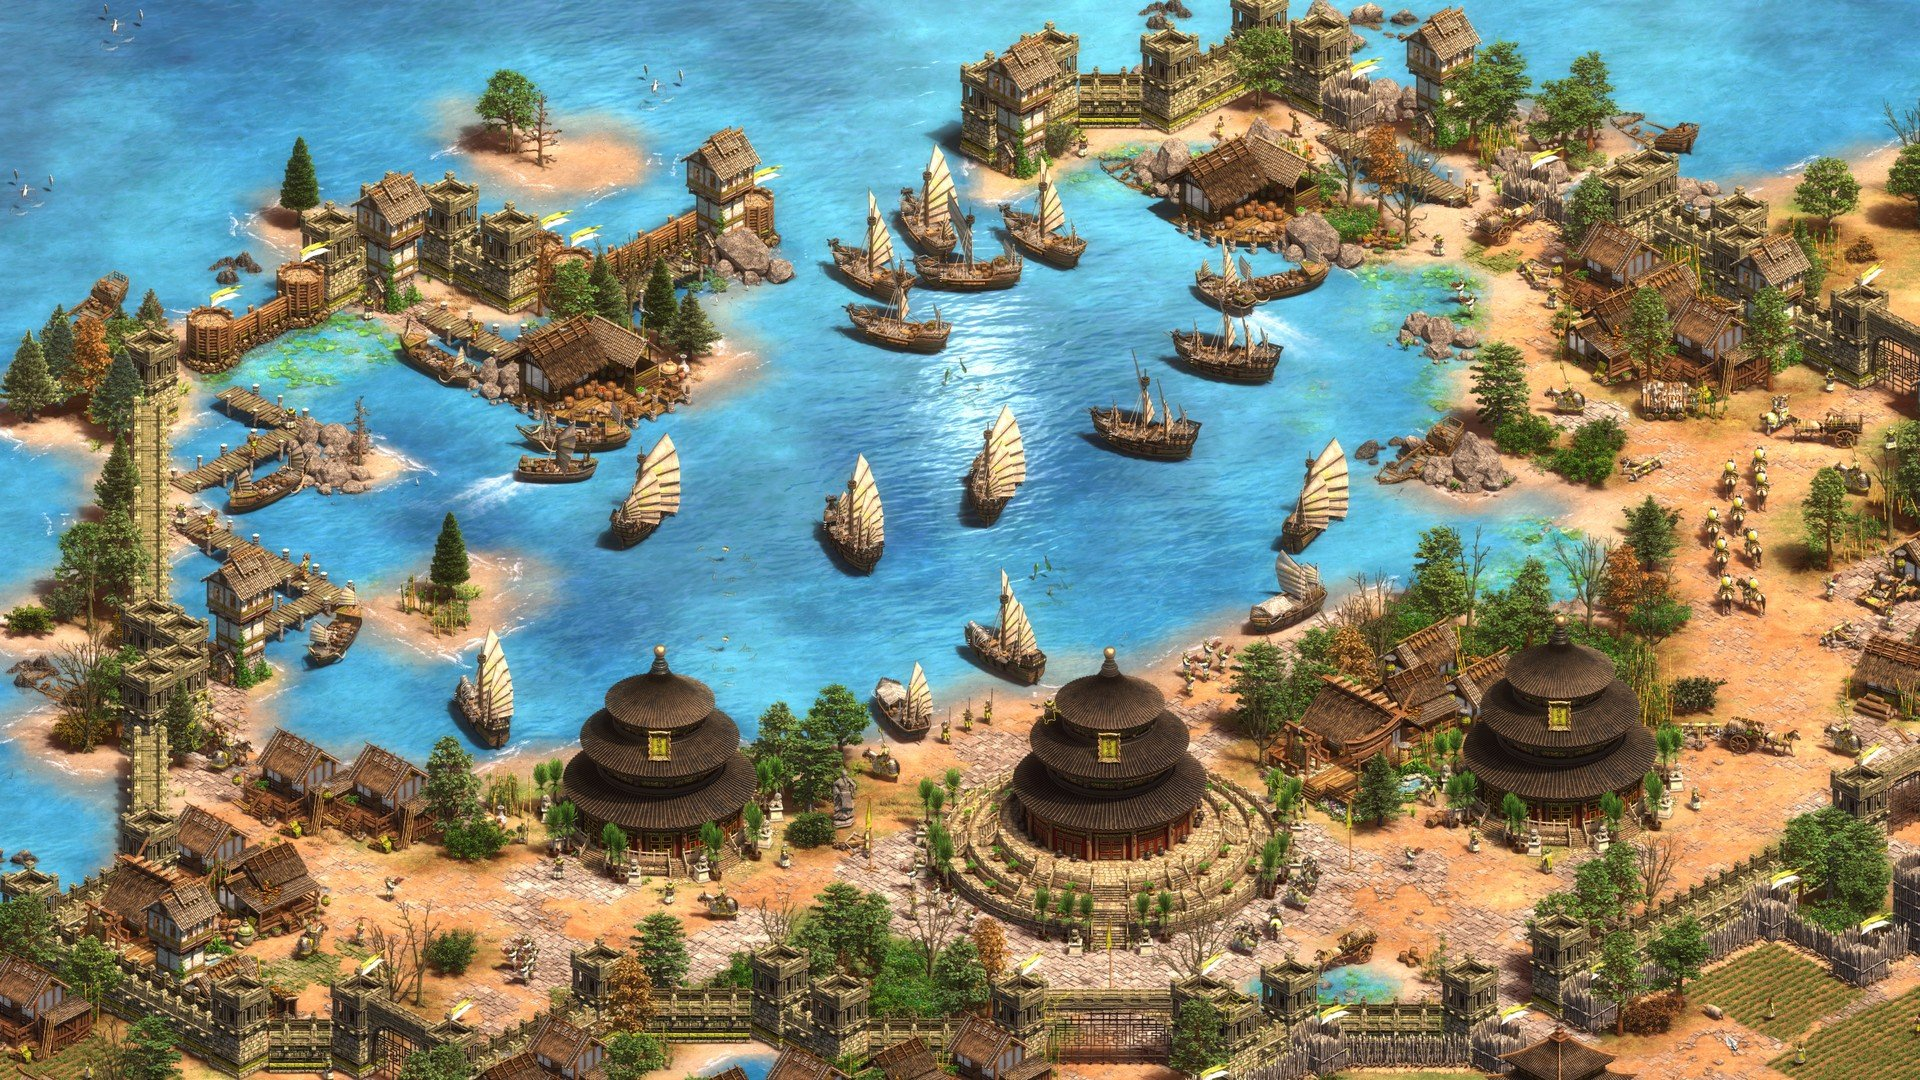 Age of Empires II: Definitive Edition lives up to its title screenshot